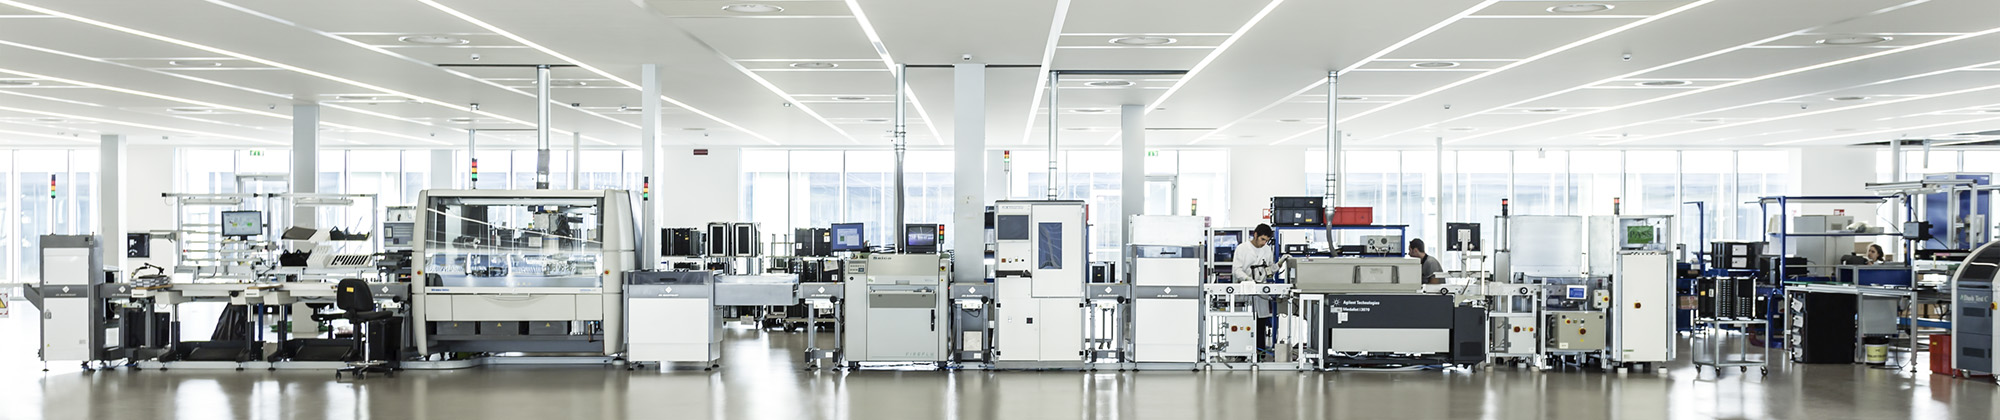 Electronics Circuit Board Manufacturing and Assembly Line